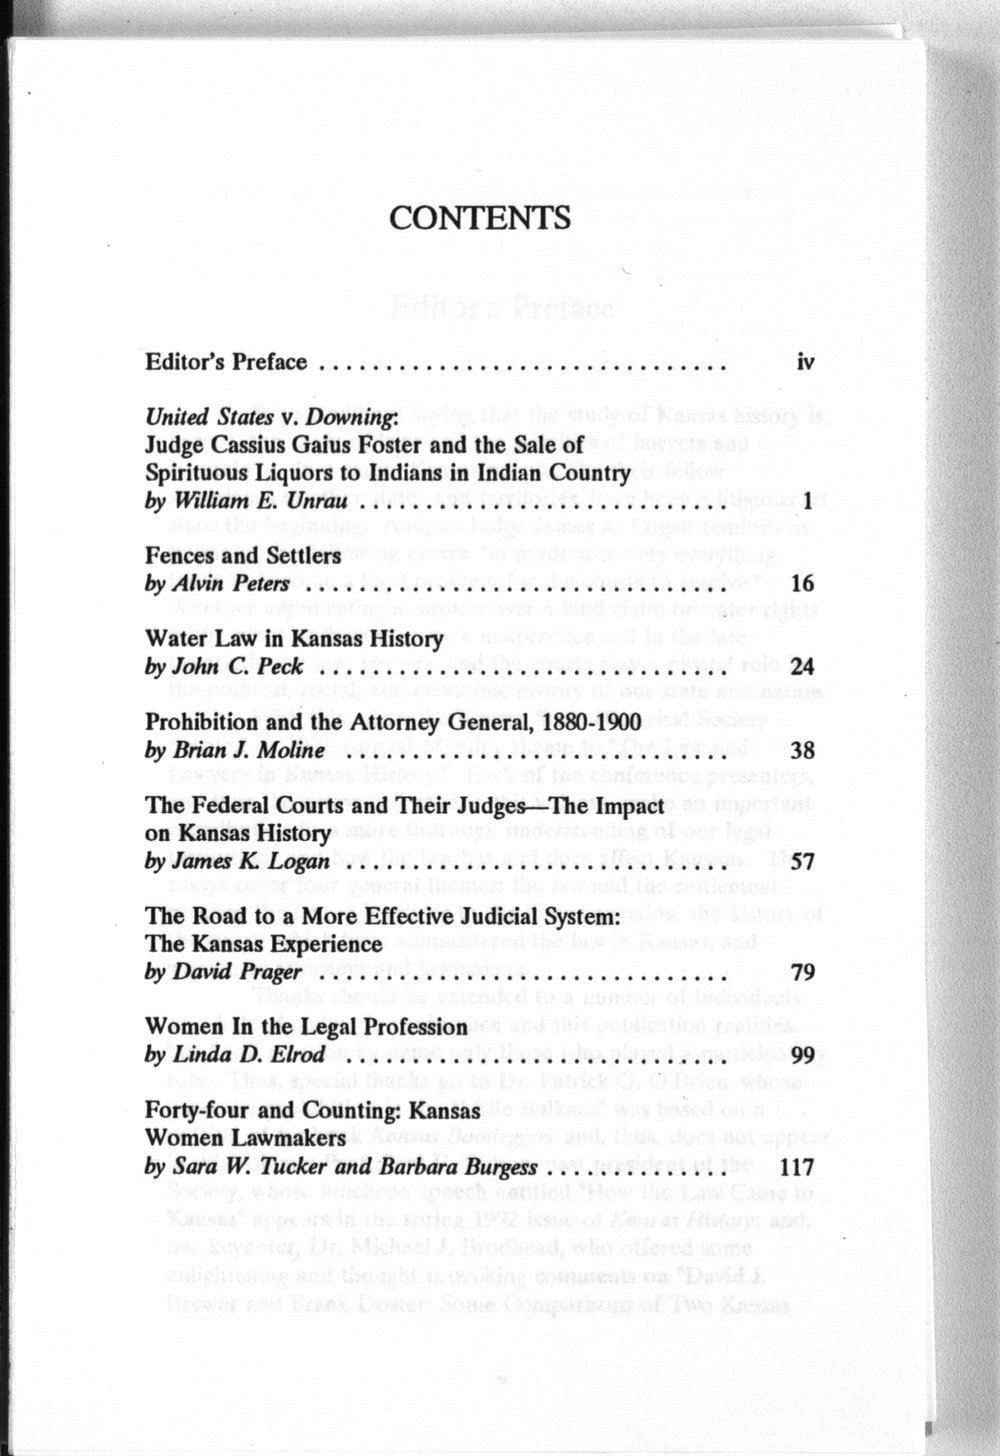 The law and lawyers in Kansas history - Contents